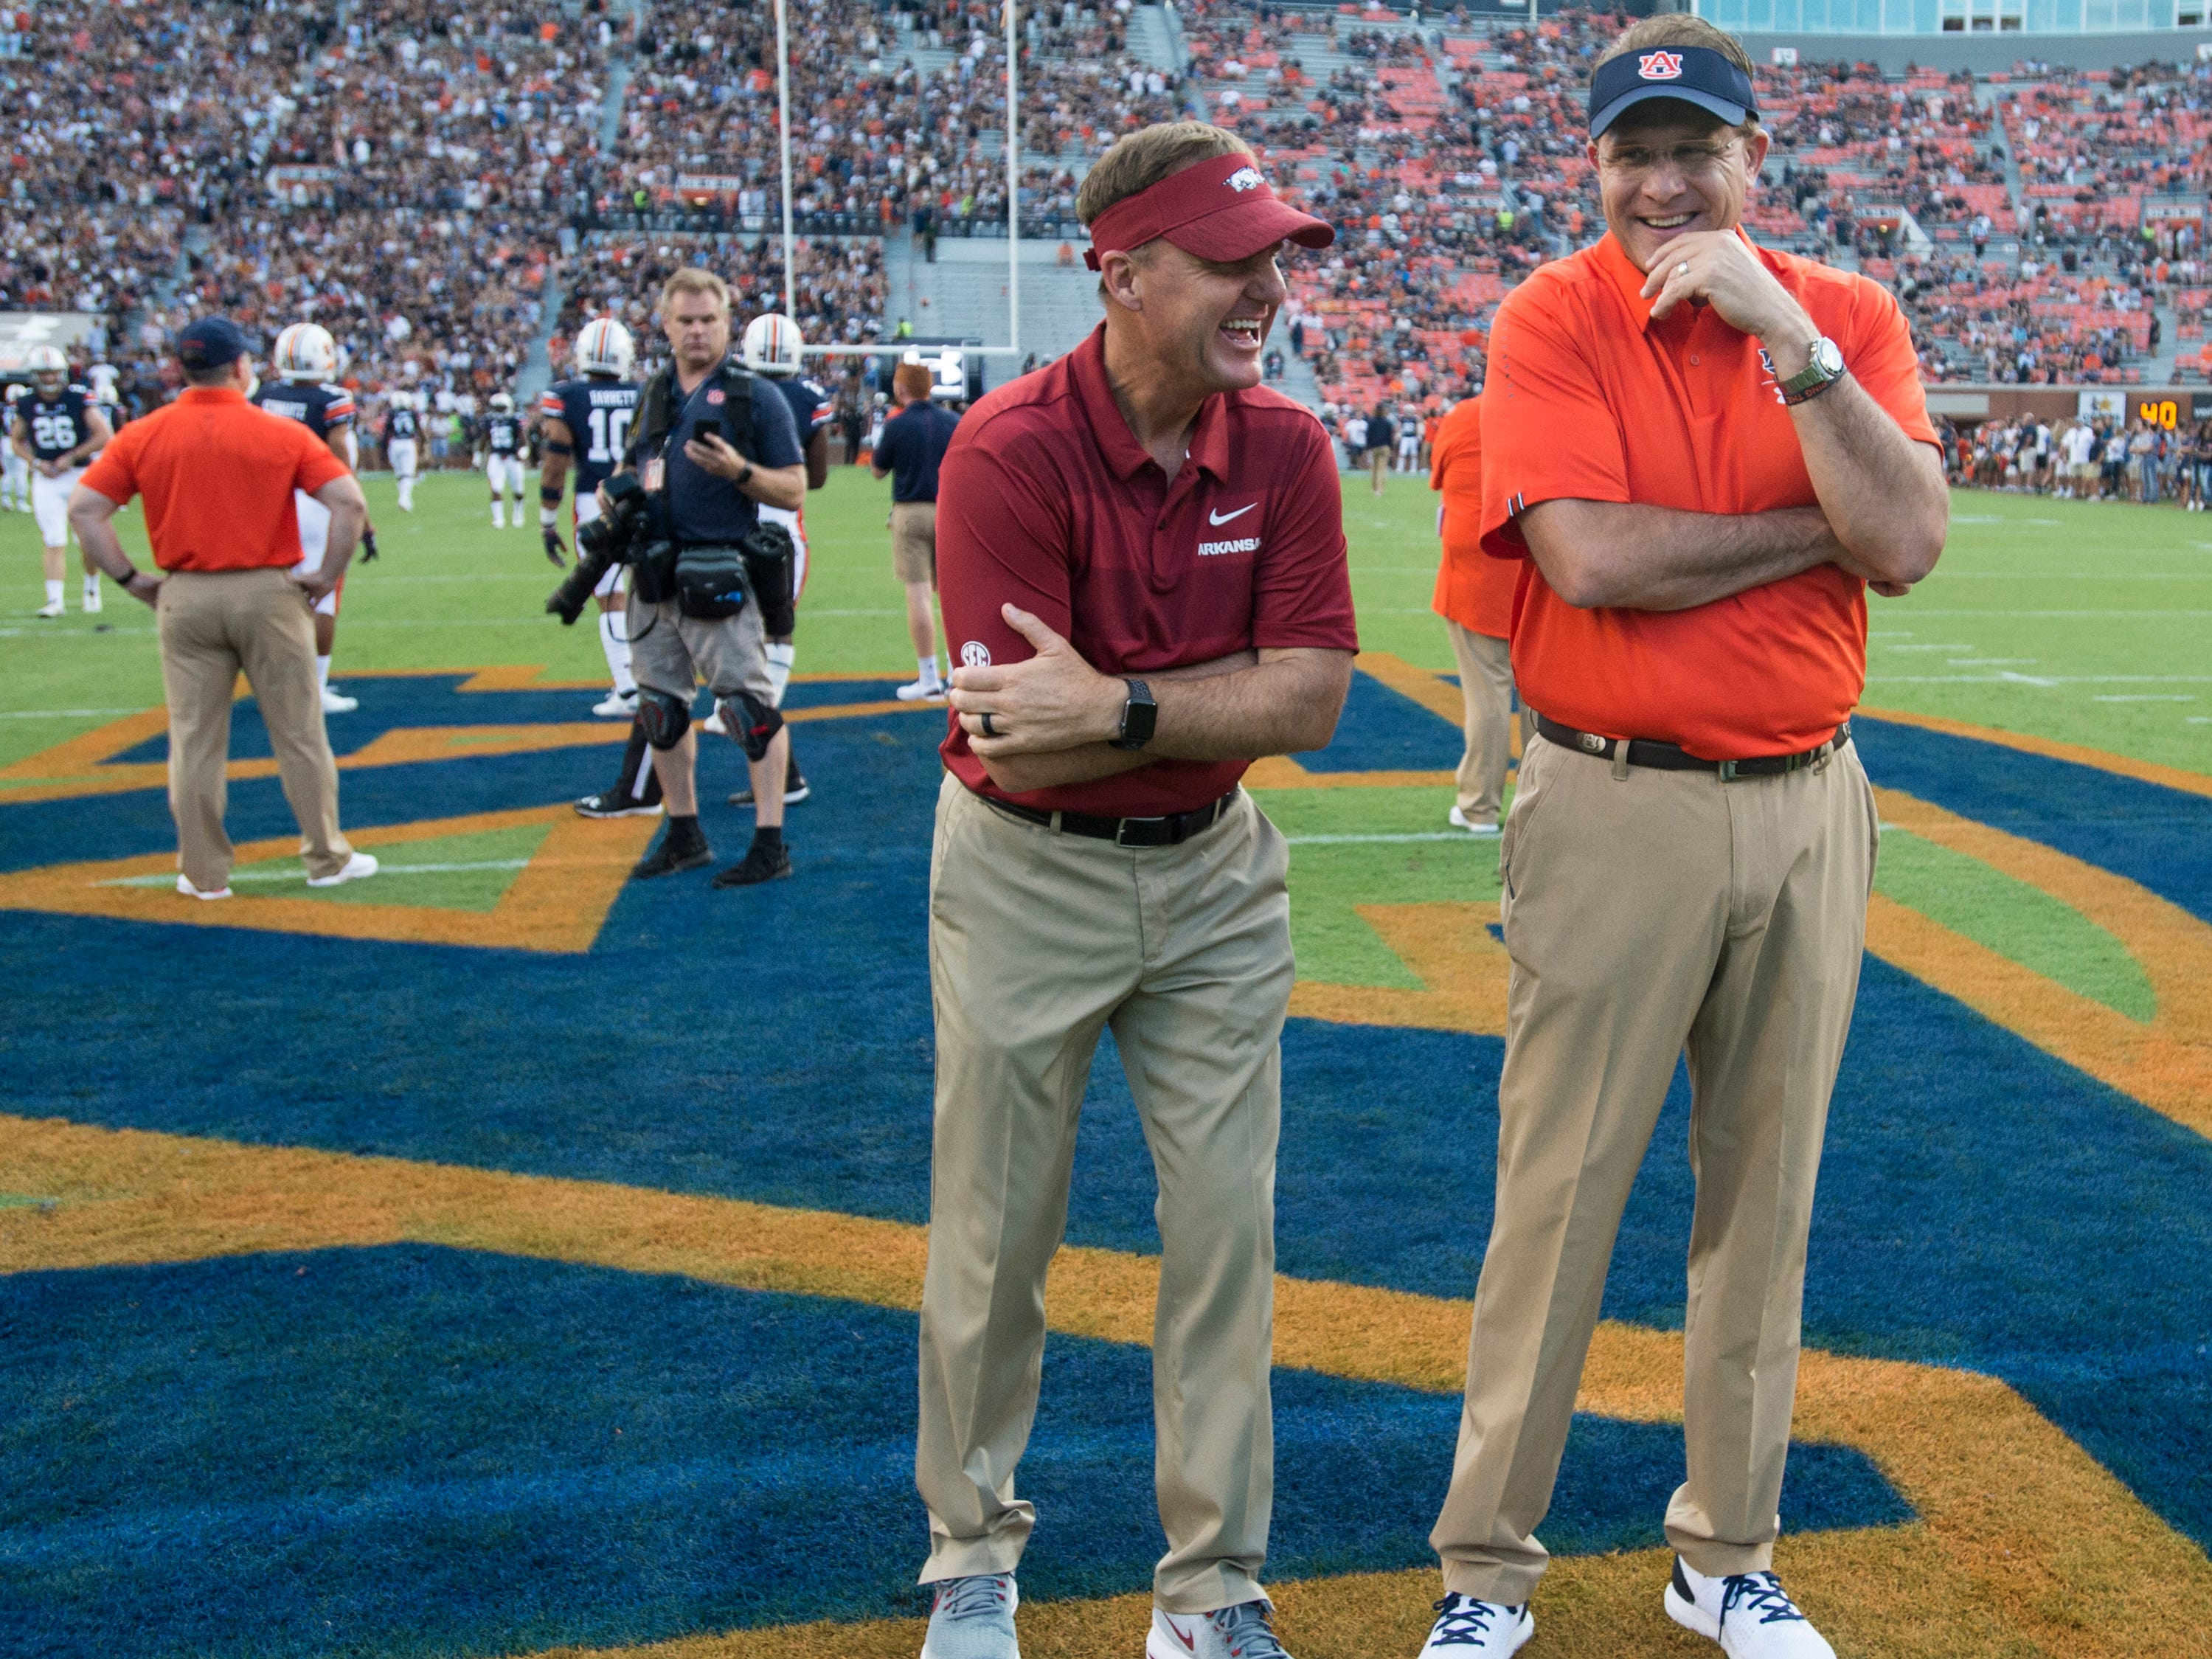 Arkansas head coach Chad Morris and Auburn head coach Gus Malzahn joke on the field as their teams warm up at Jordan-Hare Stadium in Auburn, Ala., on Saturday, Sept. 21, 2018.